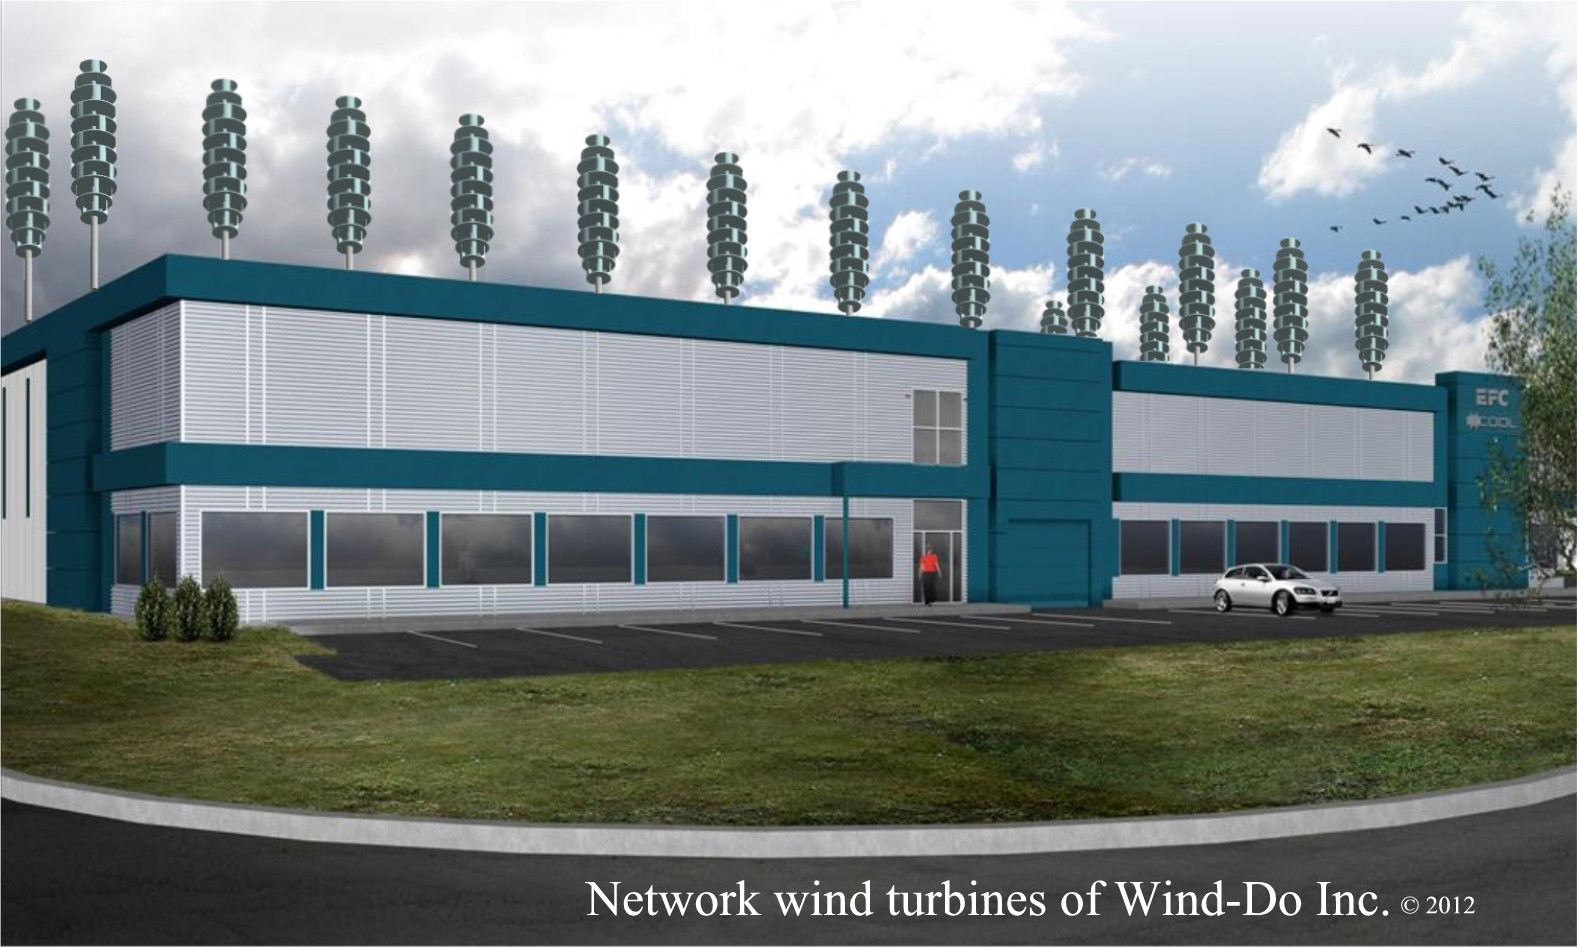 Network WT on industrial building